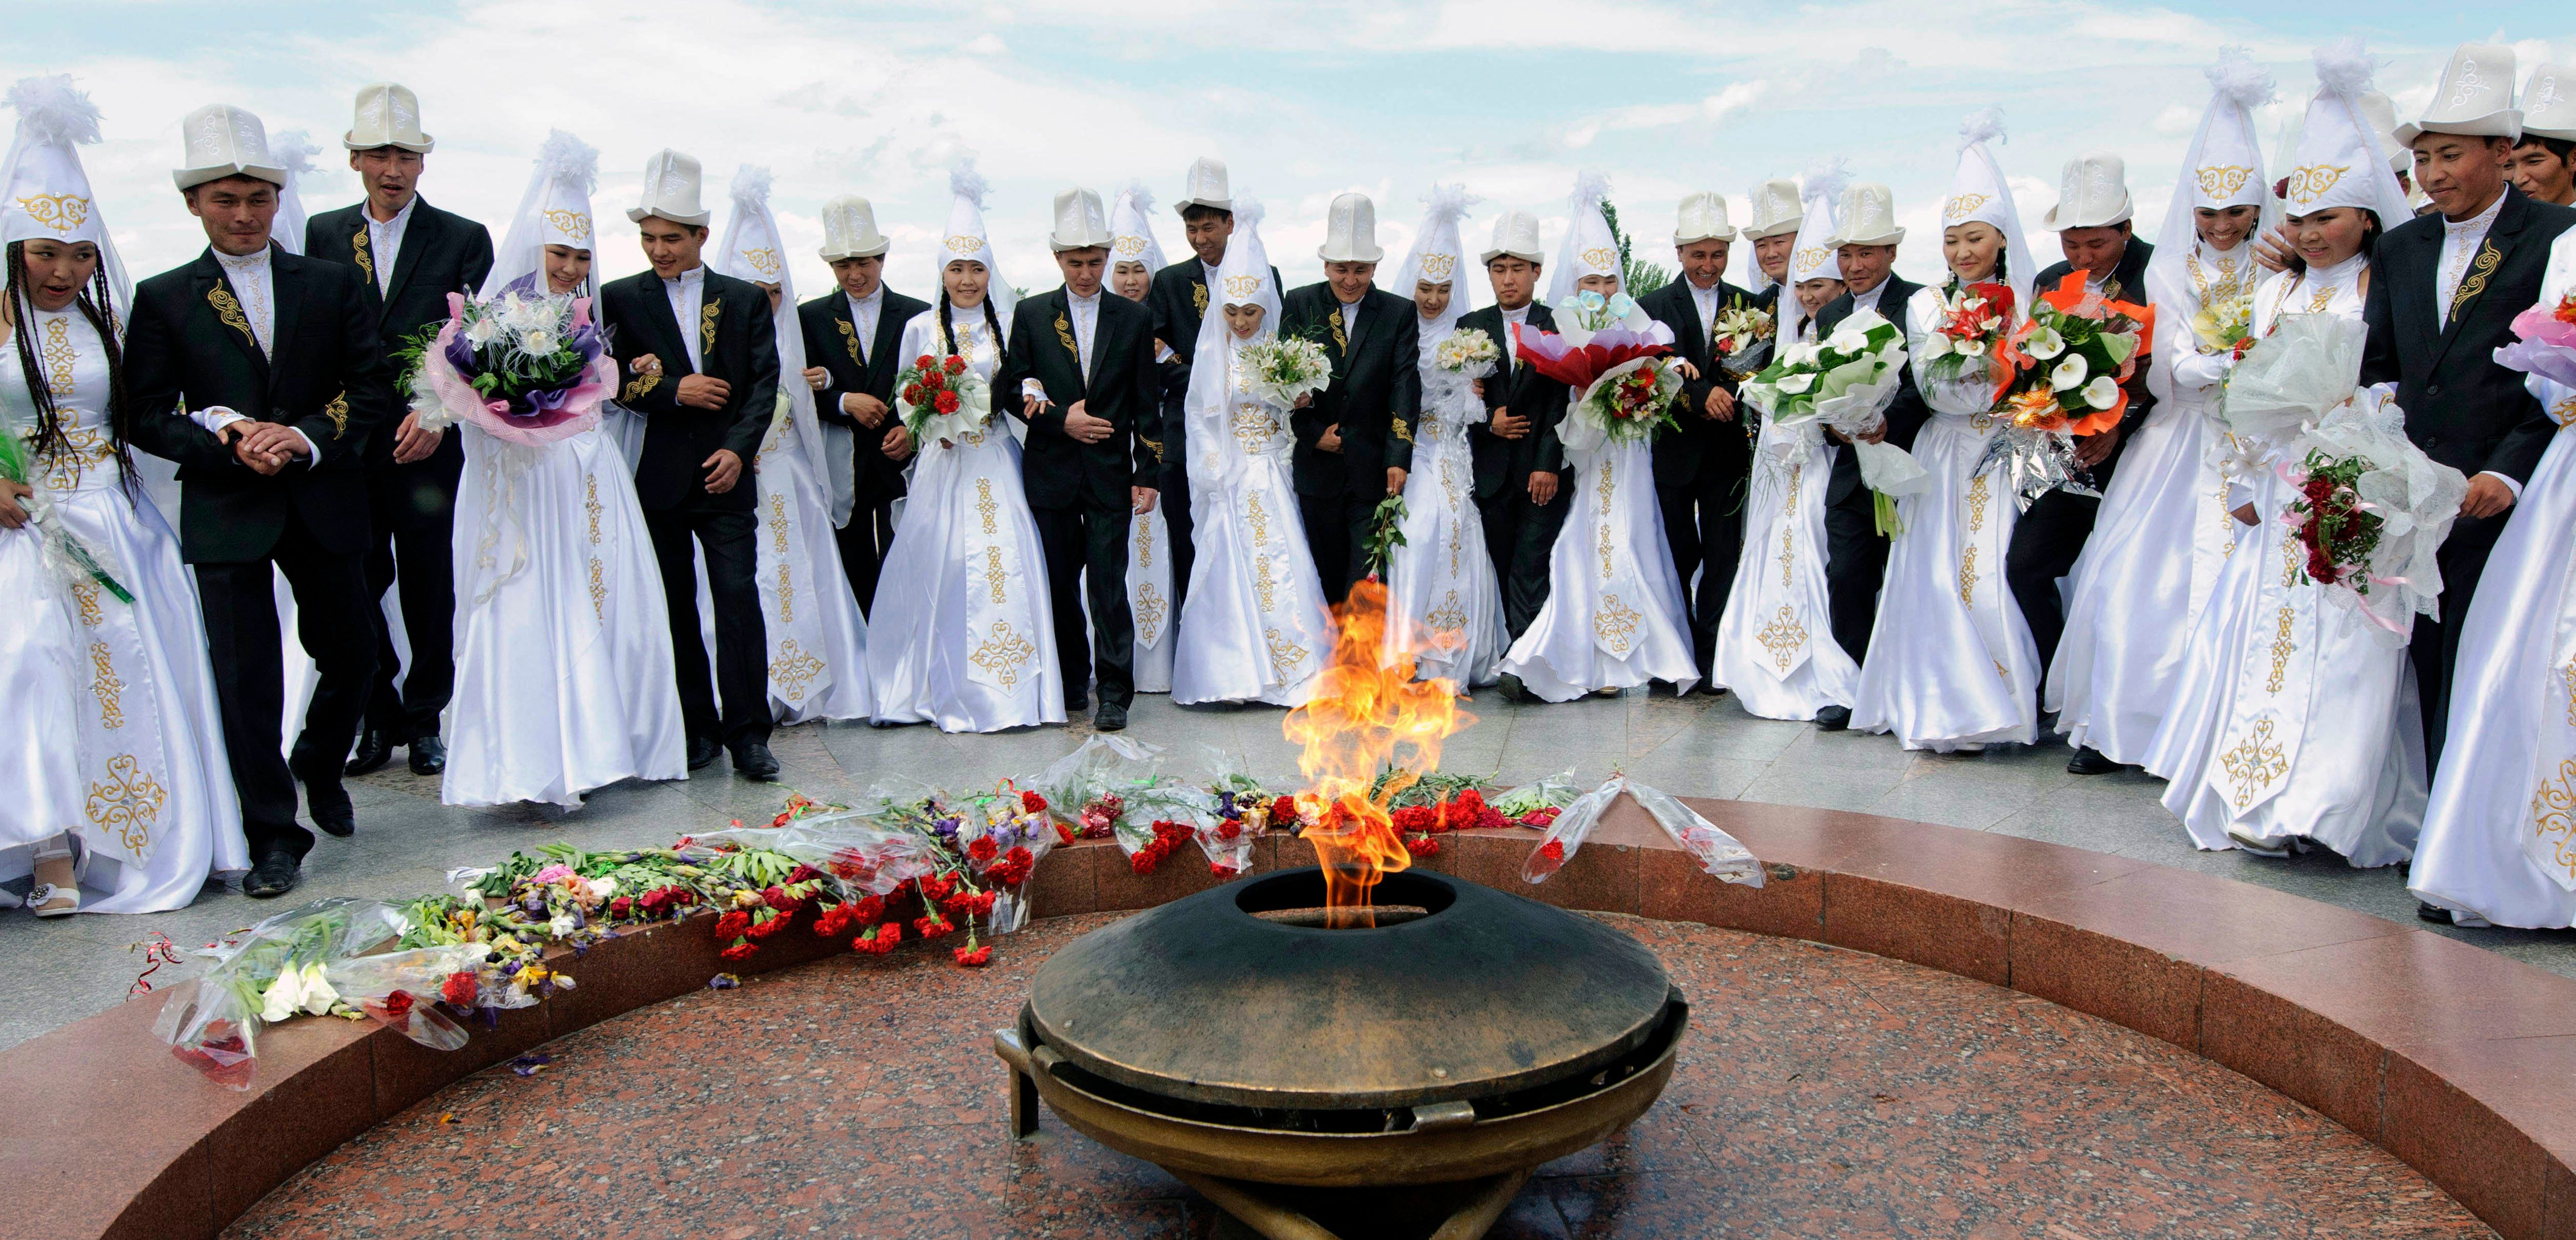 Kyrgyz brides and grooms lay flowers at the Eternal Flame before a mass wedding ceremony May 7, 2011. Some estimates say up t